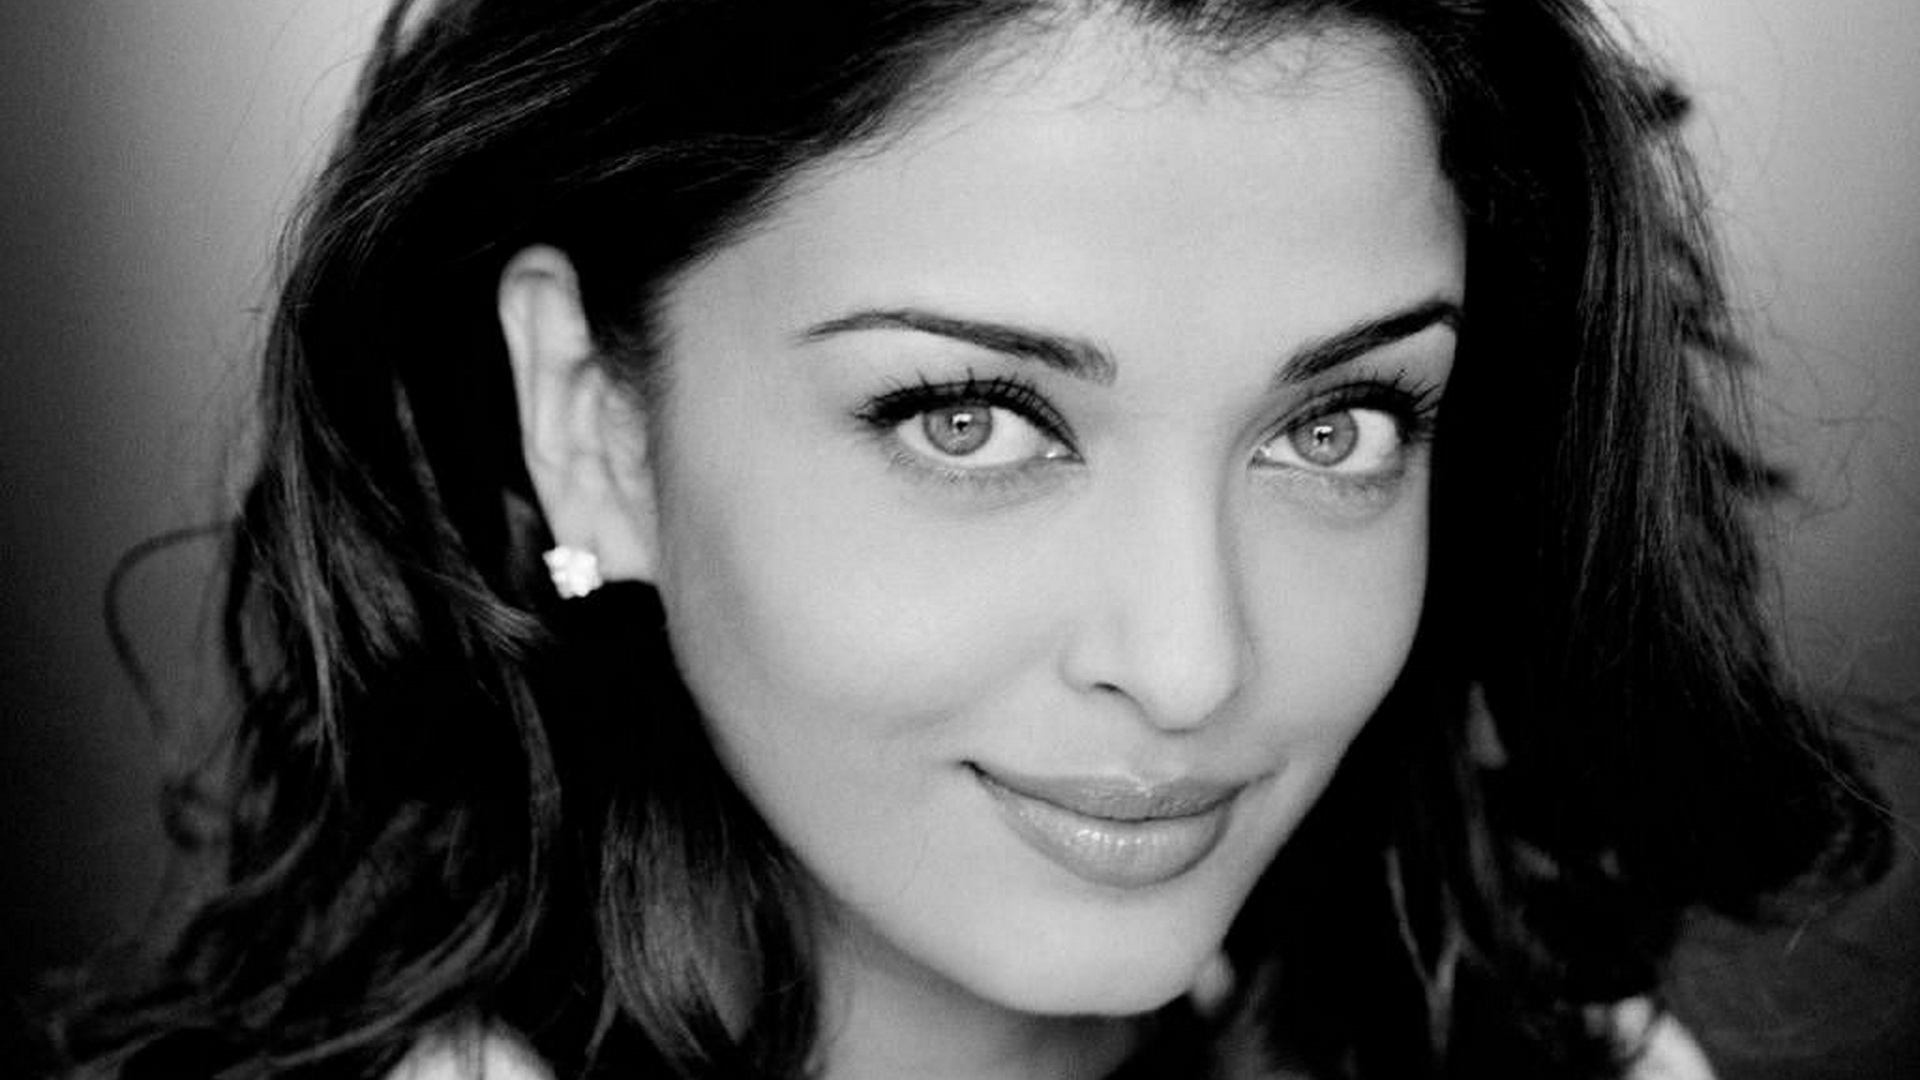 3d Wallpaper Hd 1920x1080 Aishwarya Rai 5 Wallpaper